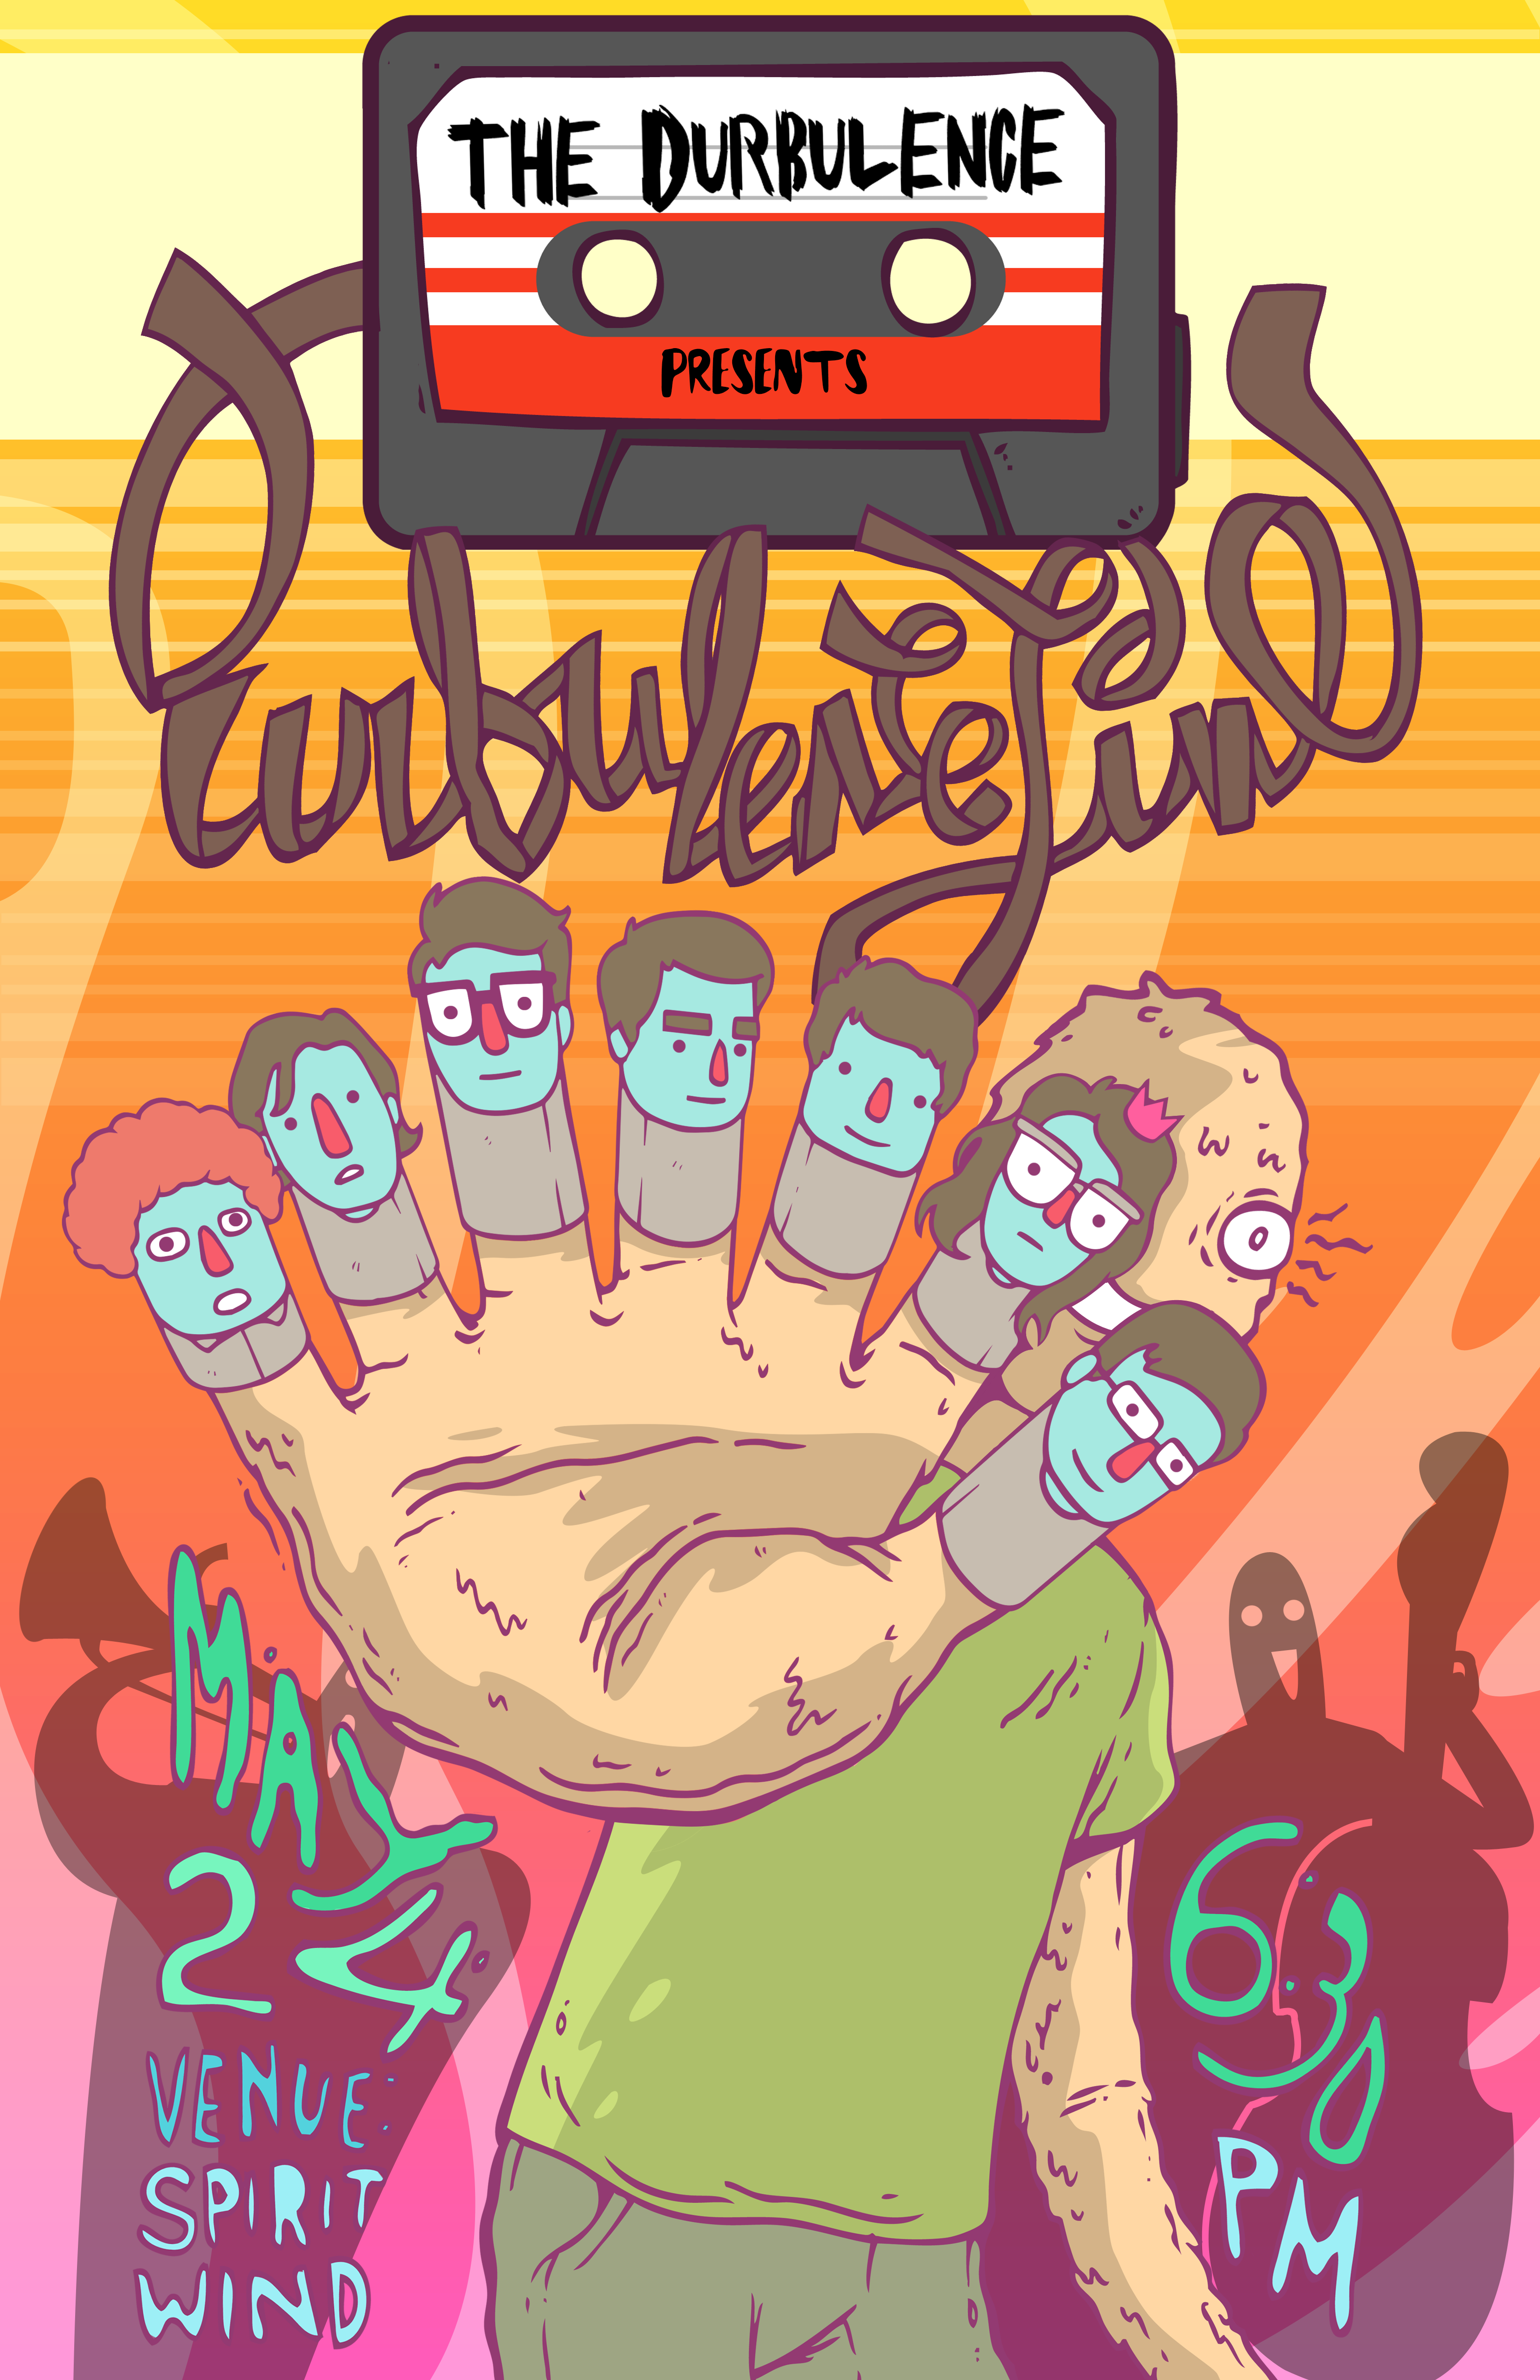 Rock Poster for an Art Group called The Durbulence